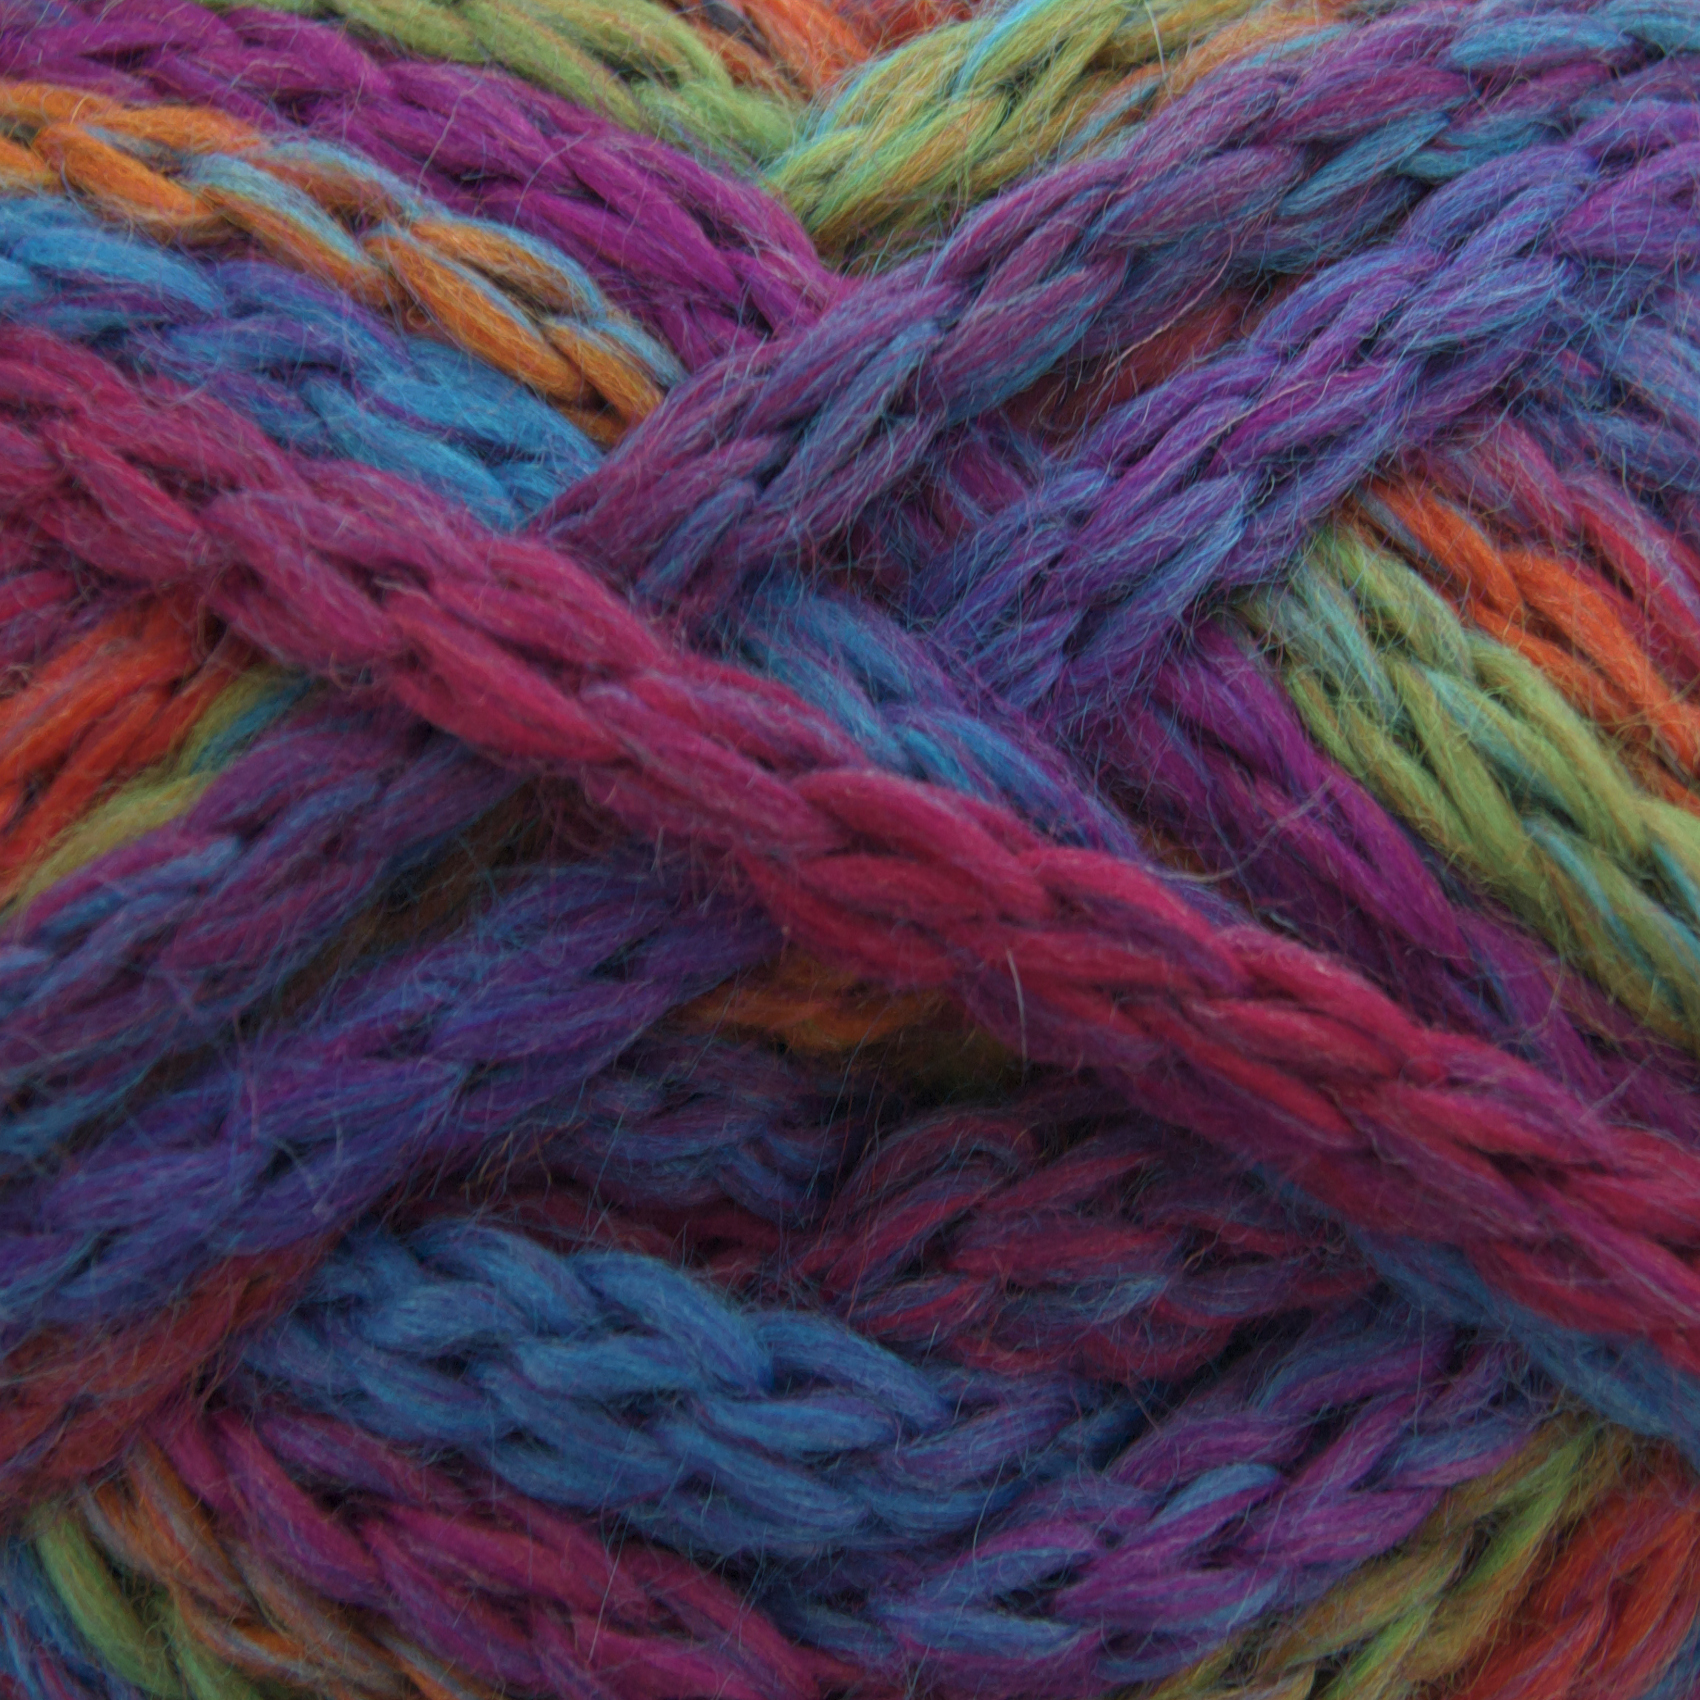 utltimate-super-chunky-king-cole-wool-yarn-rainbow-570.jpg